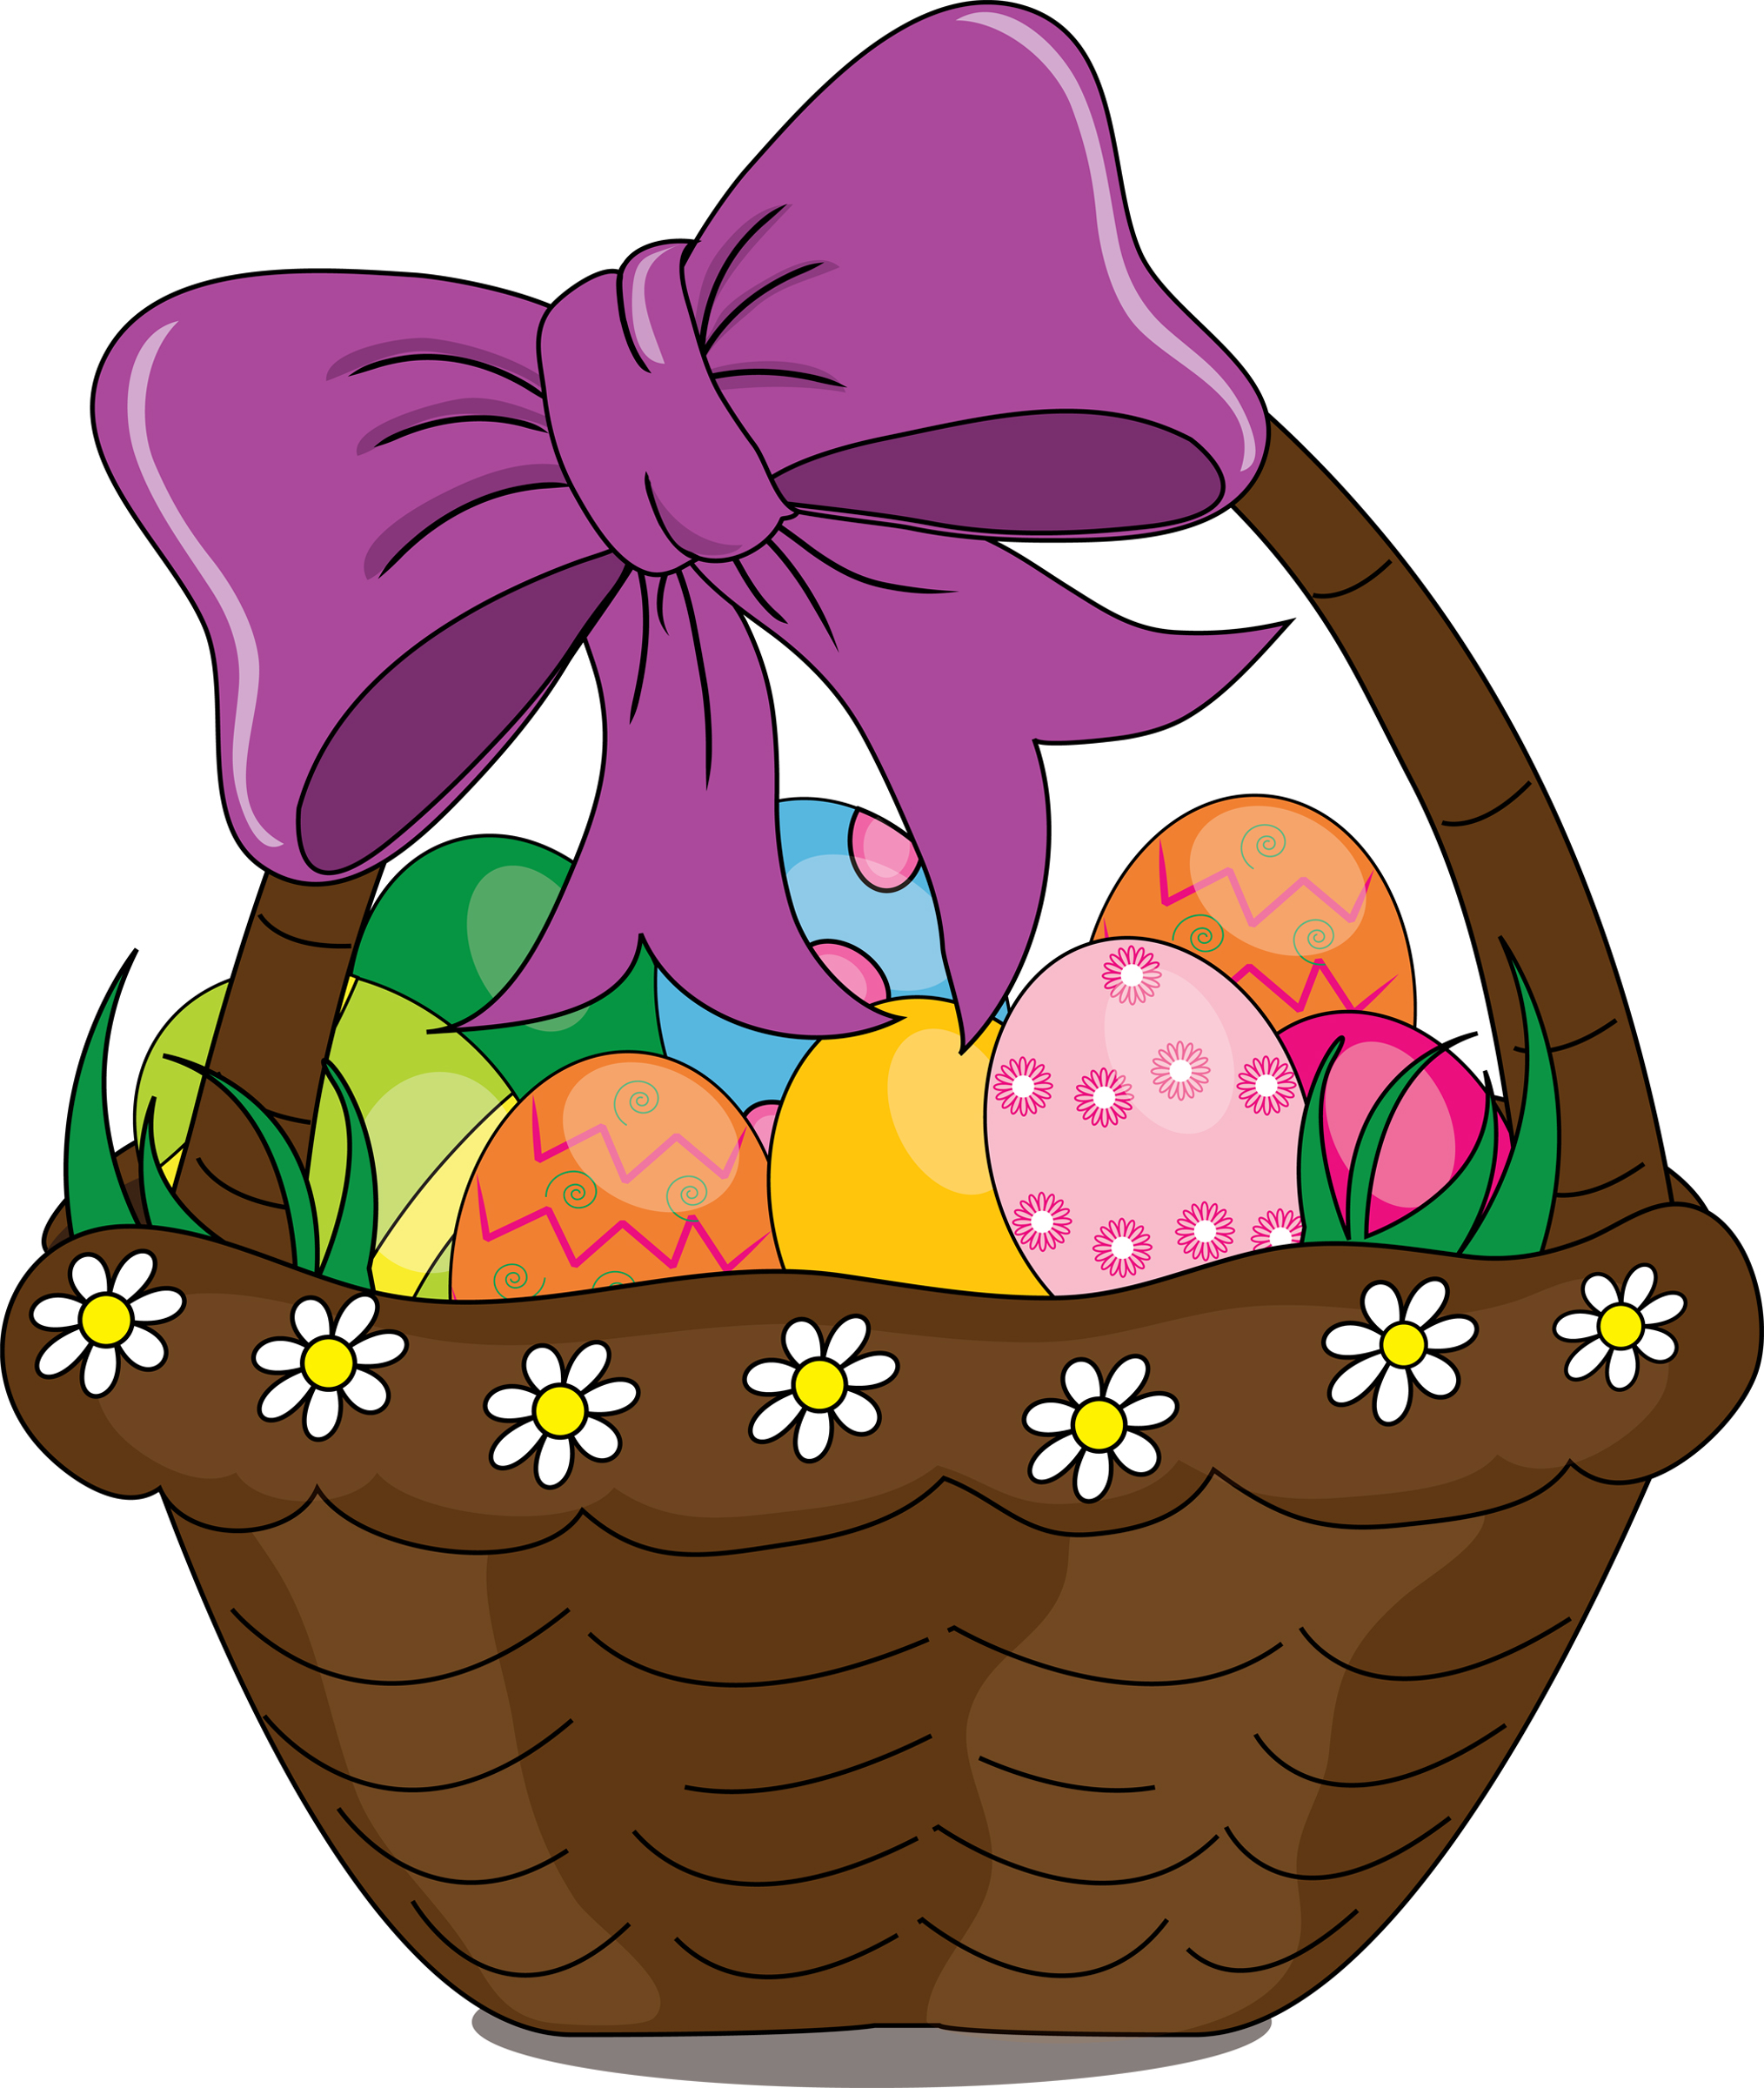 easter basket clipart at getdrawings com free for personal use rh getdrawings com easter basket clipart images easter basket clip art black and white